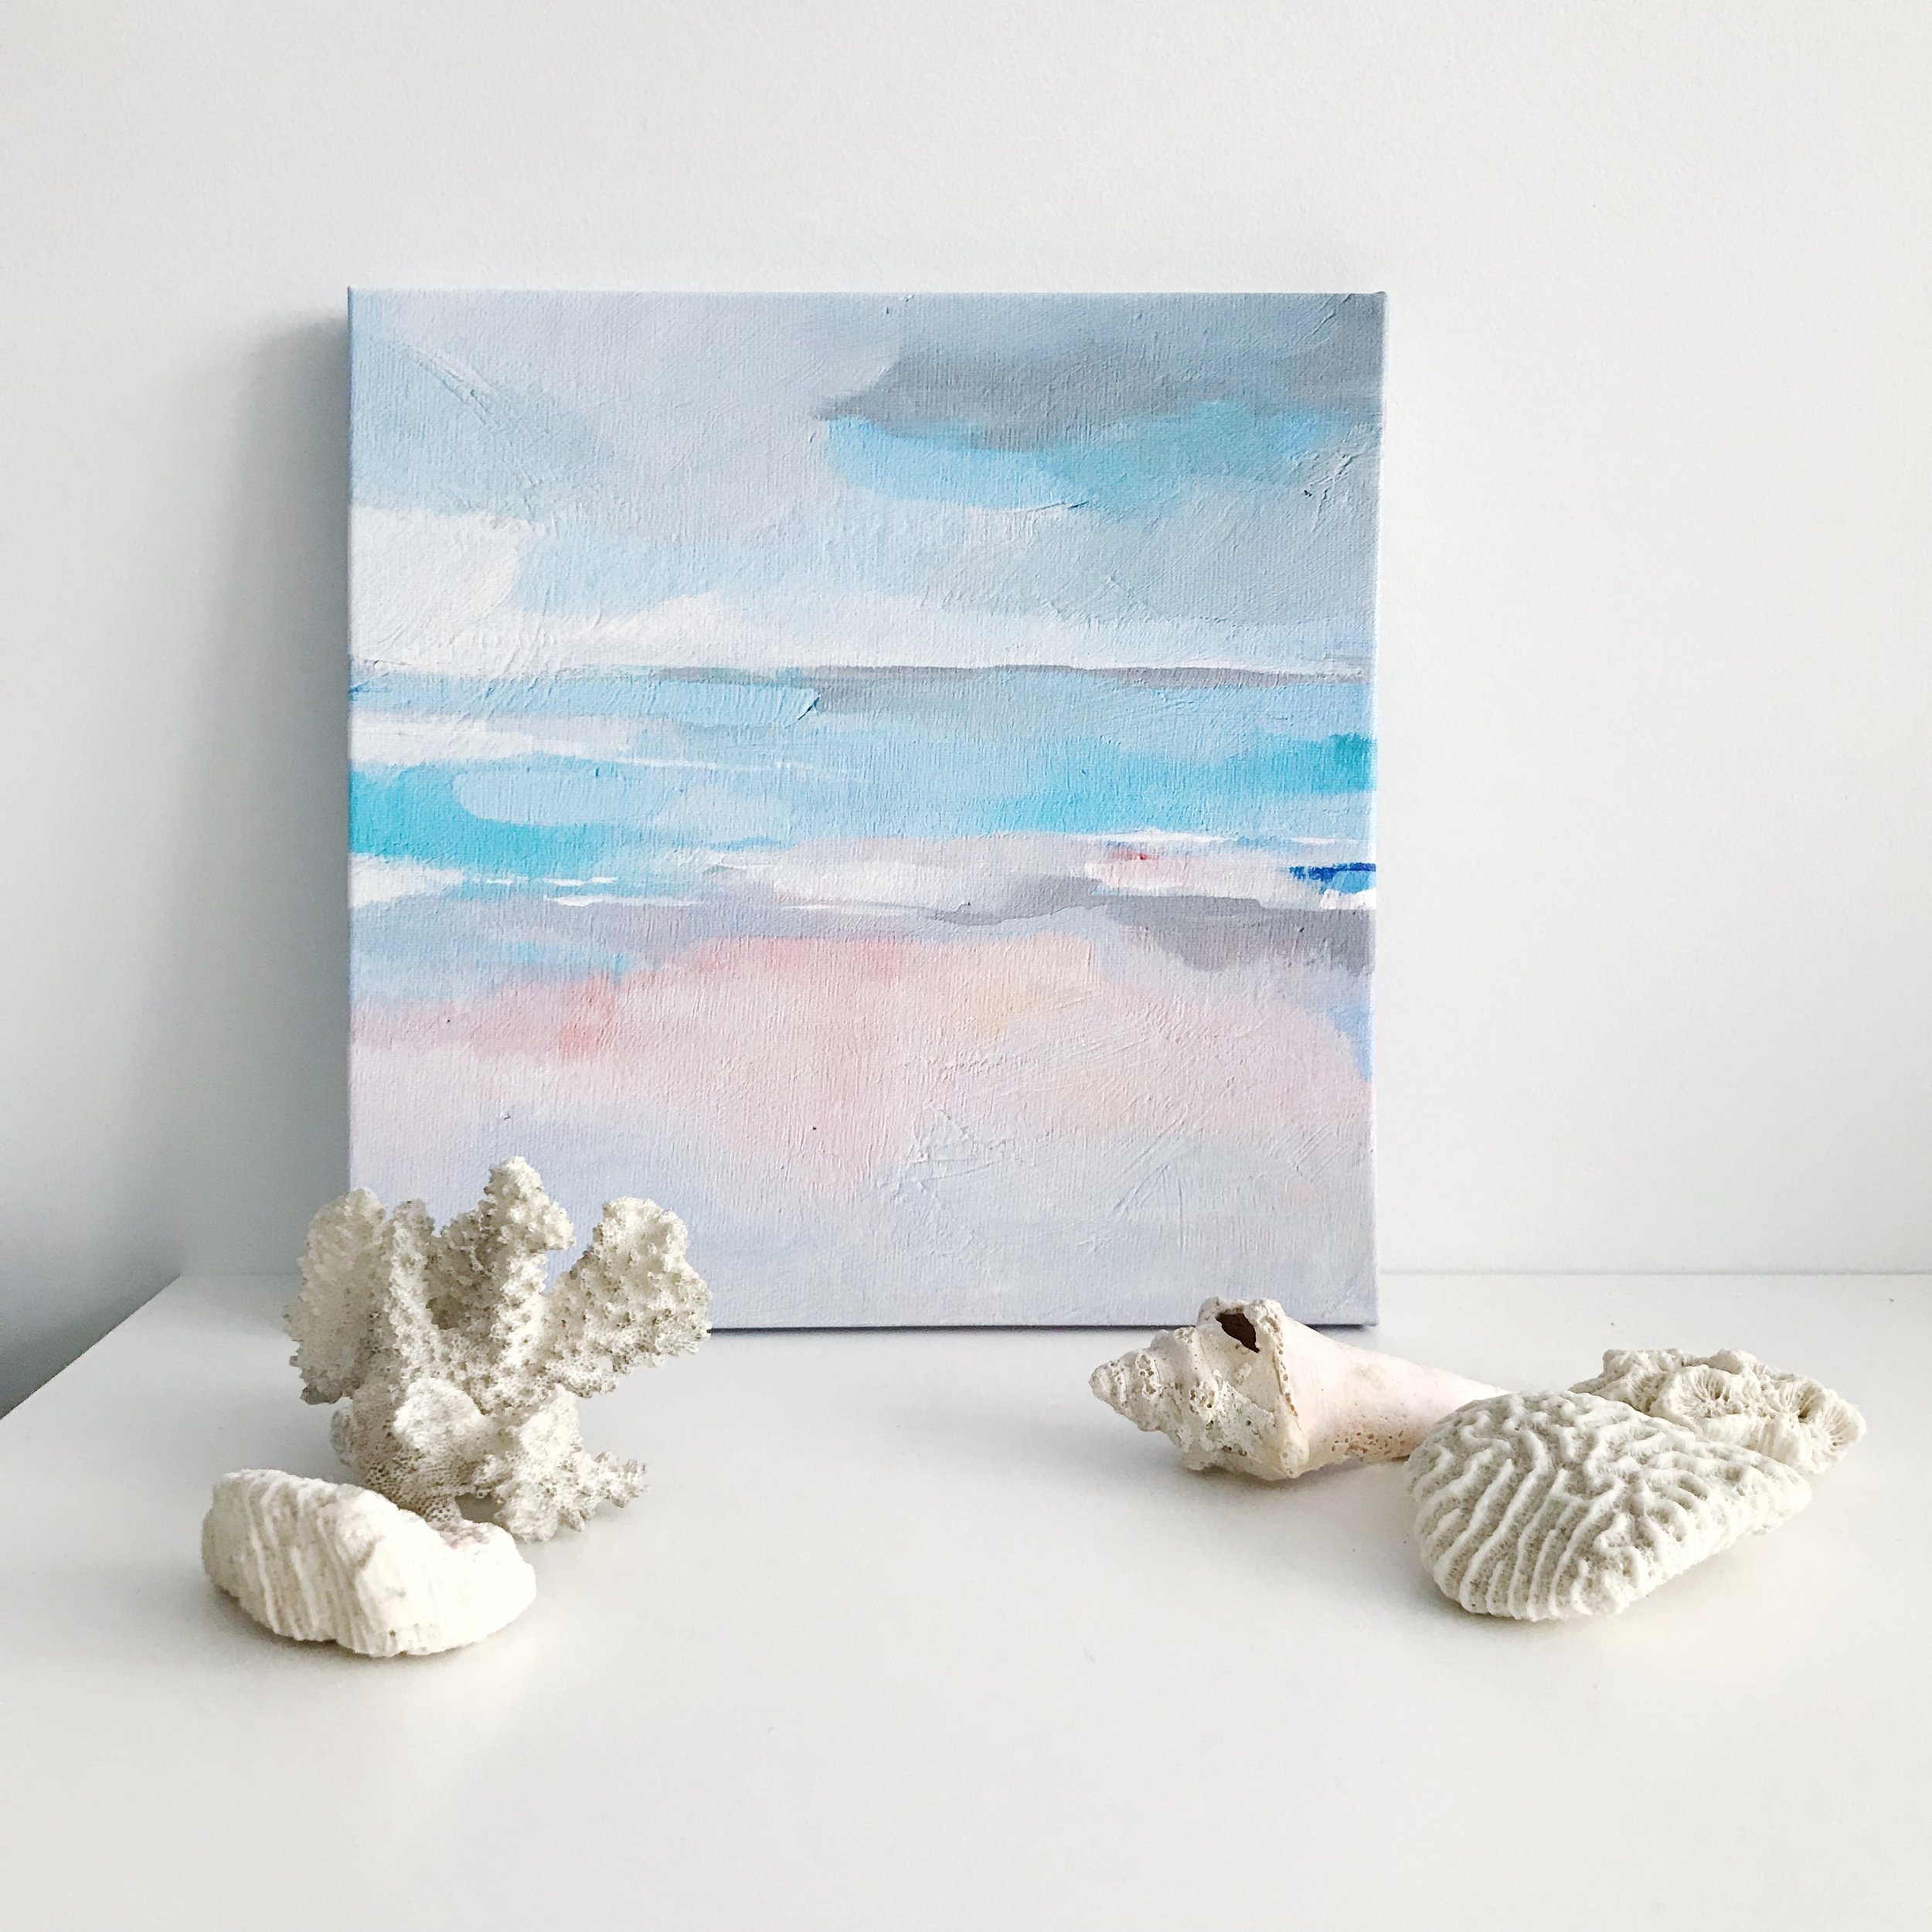 Join us for a  painting class  in Annapolis, MD on April 13, 2019 at the GORGEOUS Lightbox Studio.